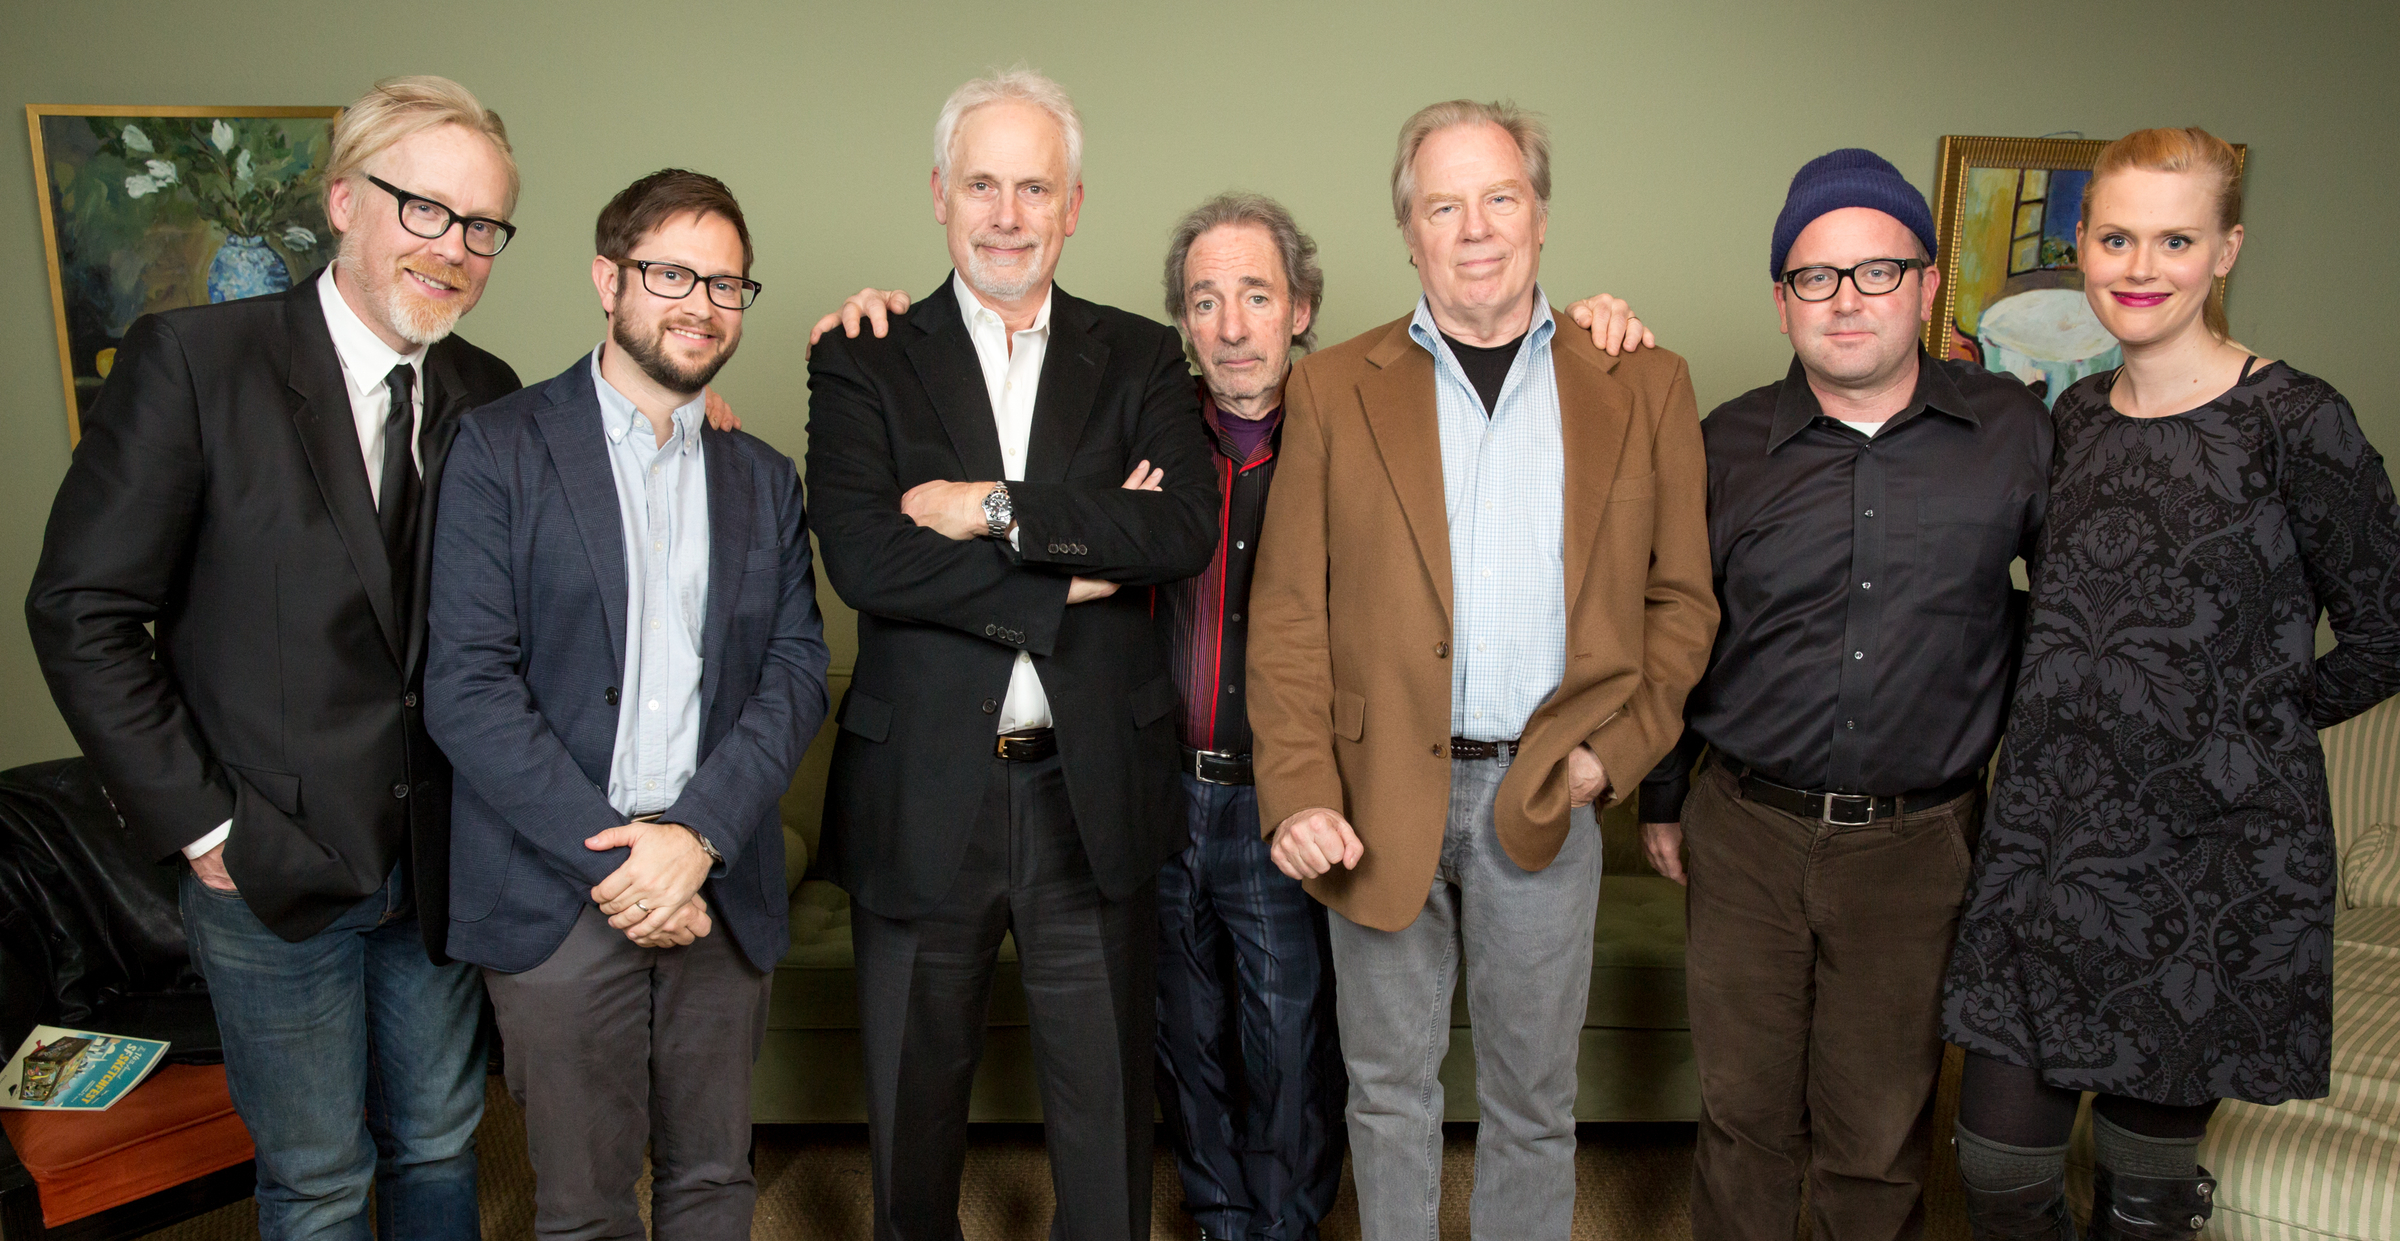 Adam Savage, Christopher Guest, Harry Shearer and Michael McKean. Photo by Jakub Mosur.